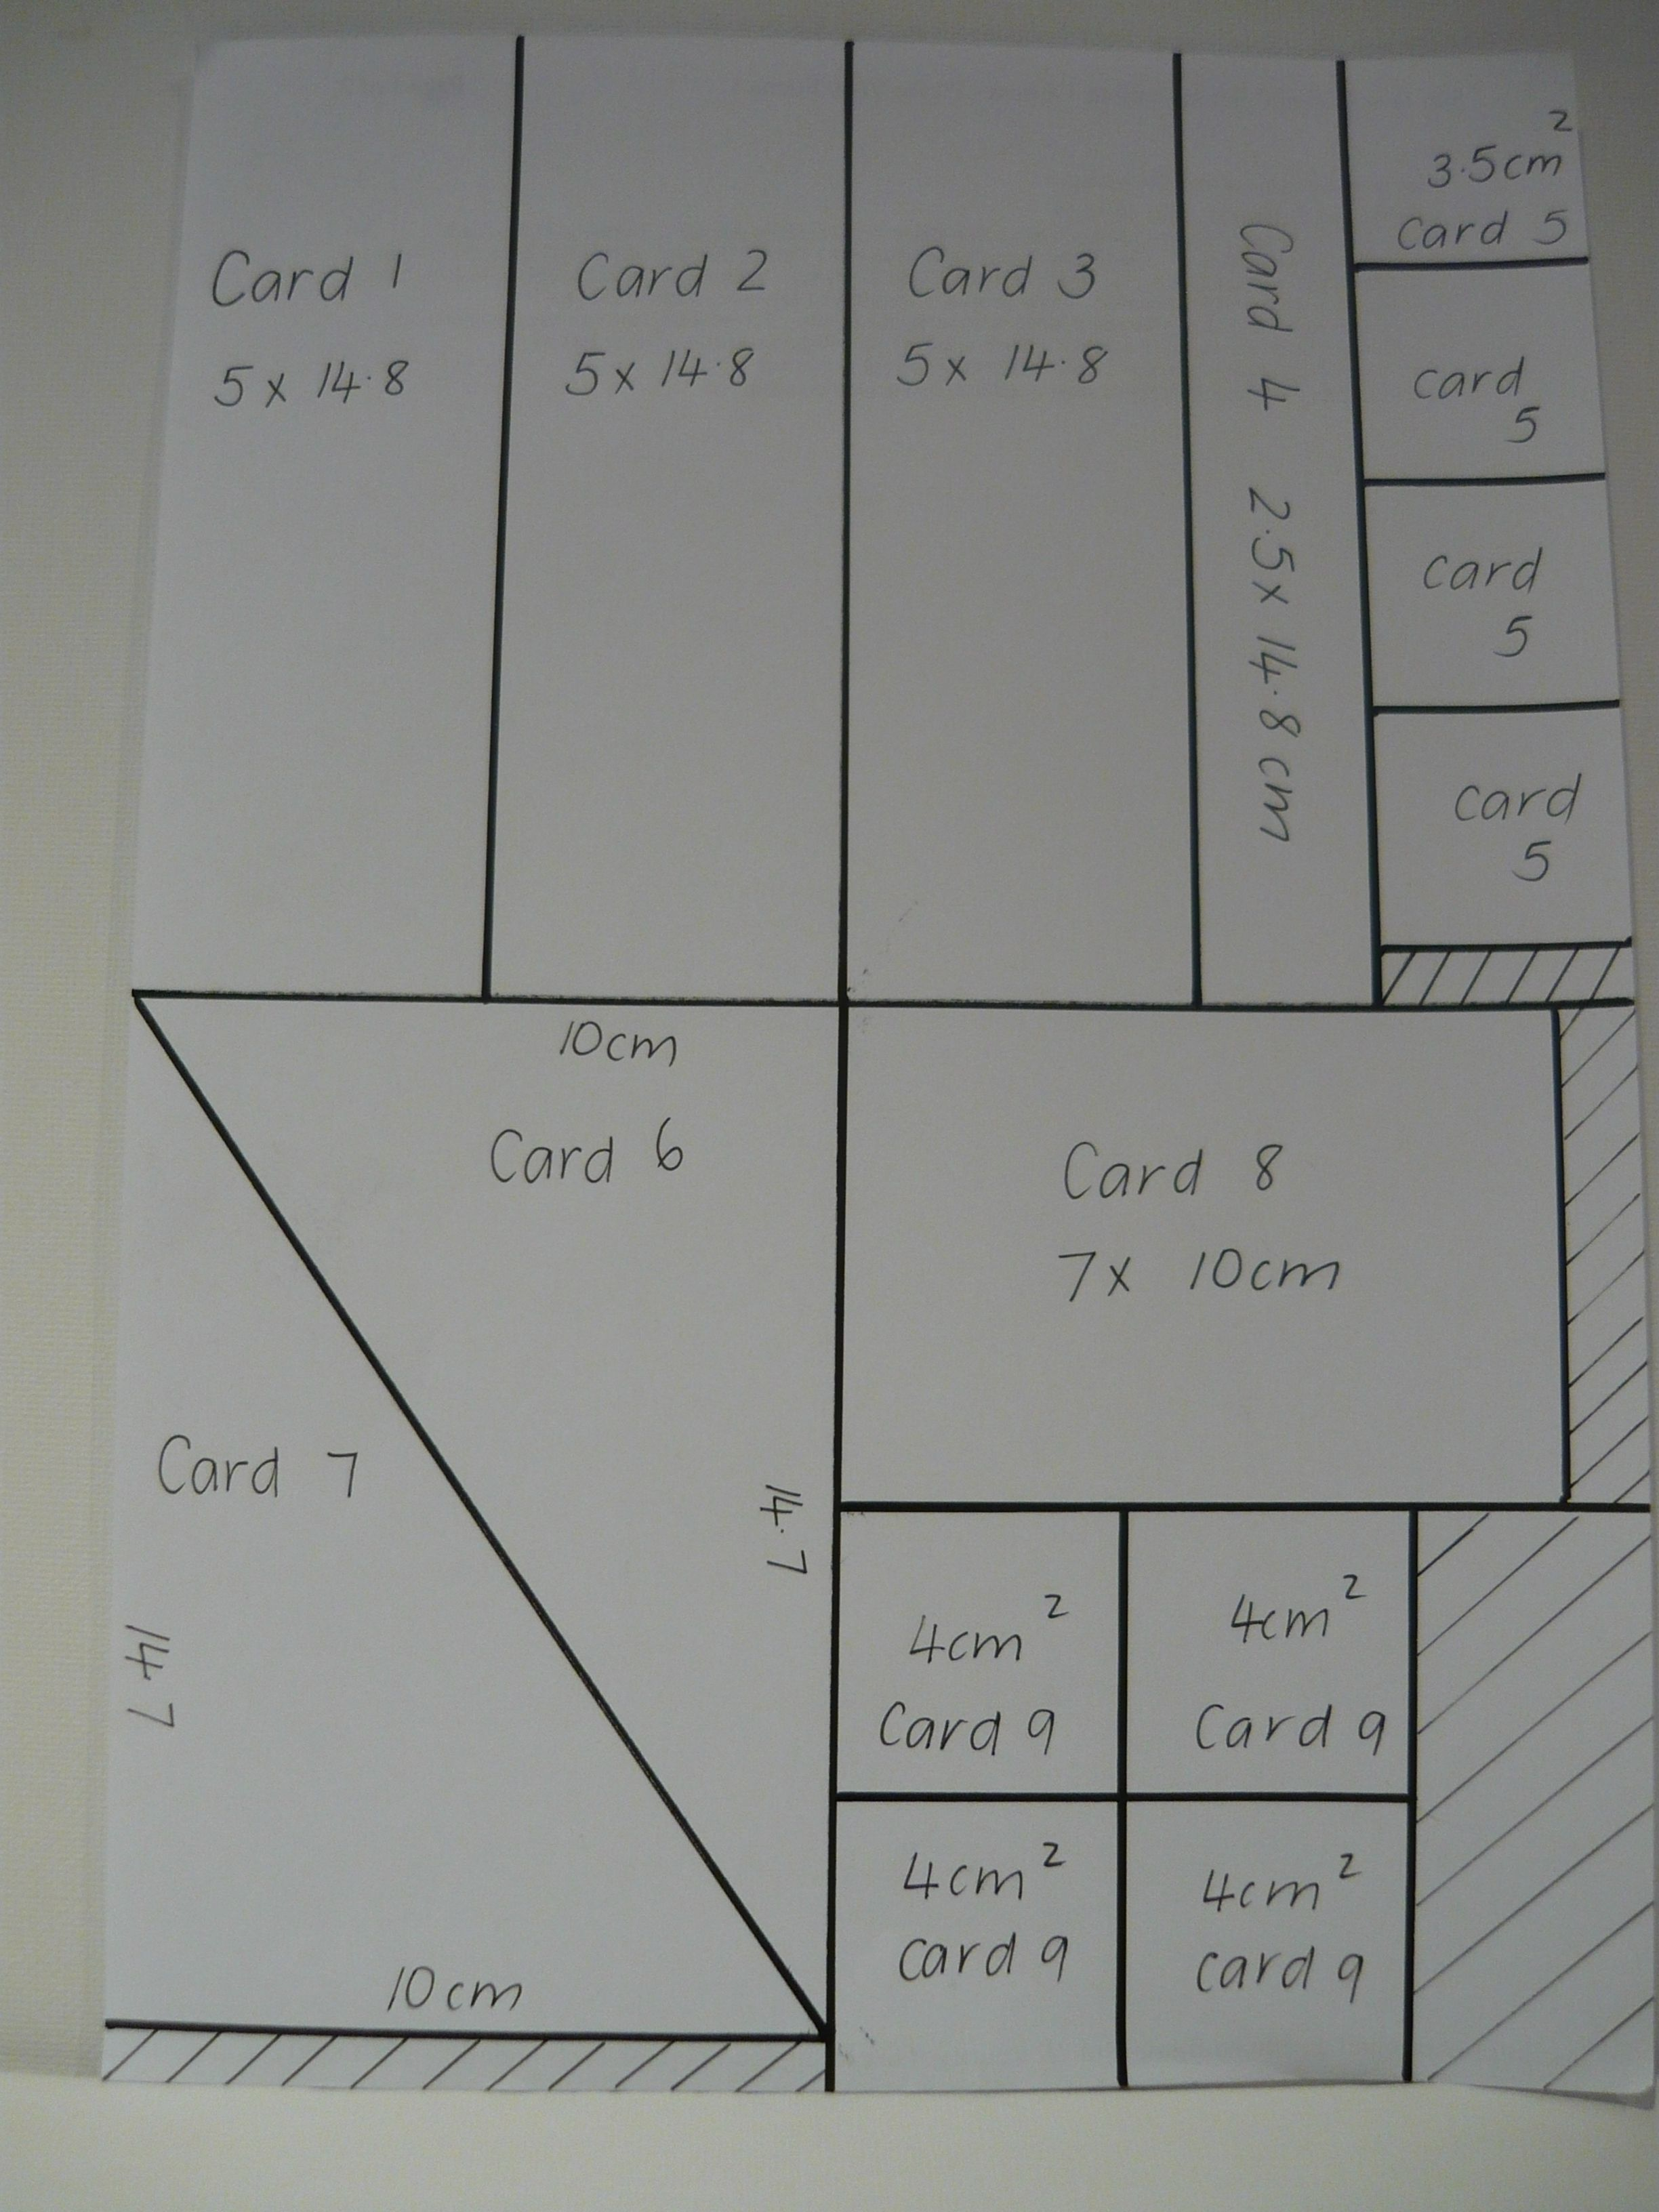 Templates For Card Making Ideas Part - 30: Http://www.craventime2stamp.com One Sheet Wonder (OSW) 2. Craft TutorialsCraft  IdeasCard Making TemplatesCraft ...